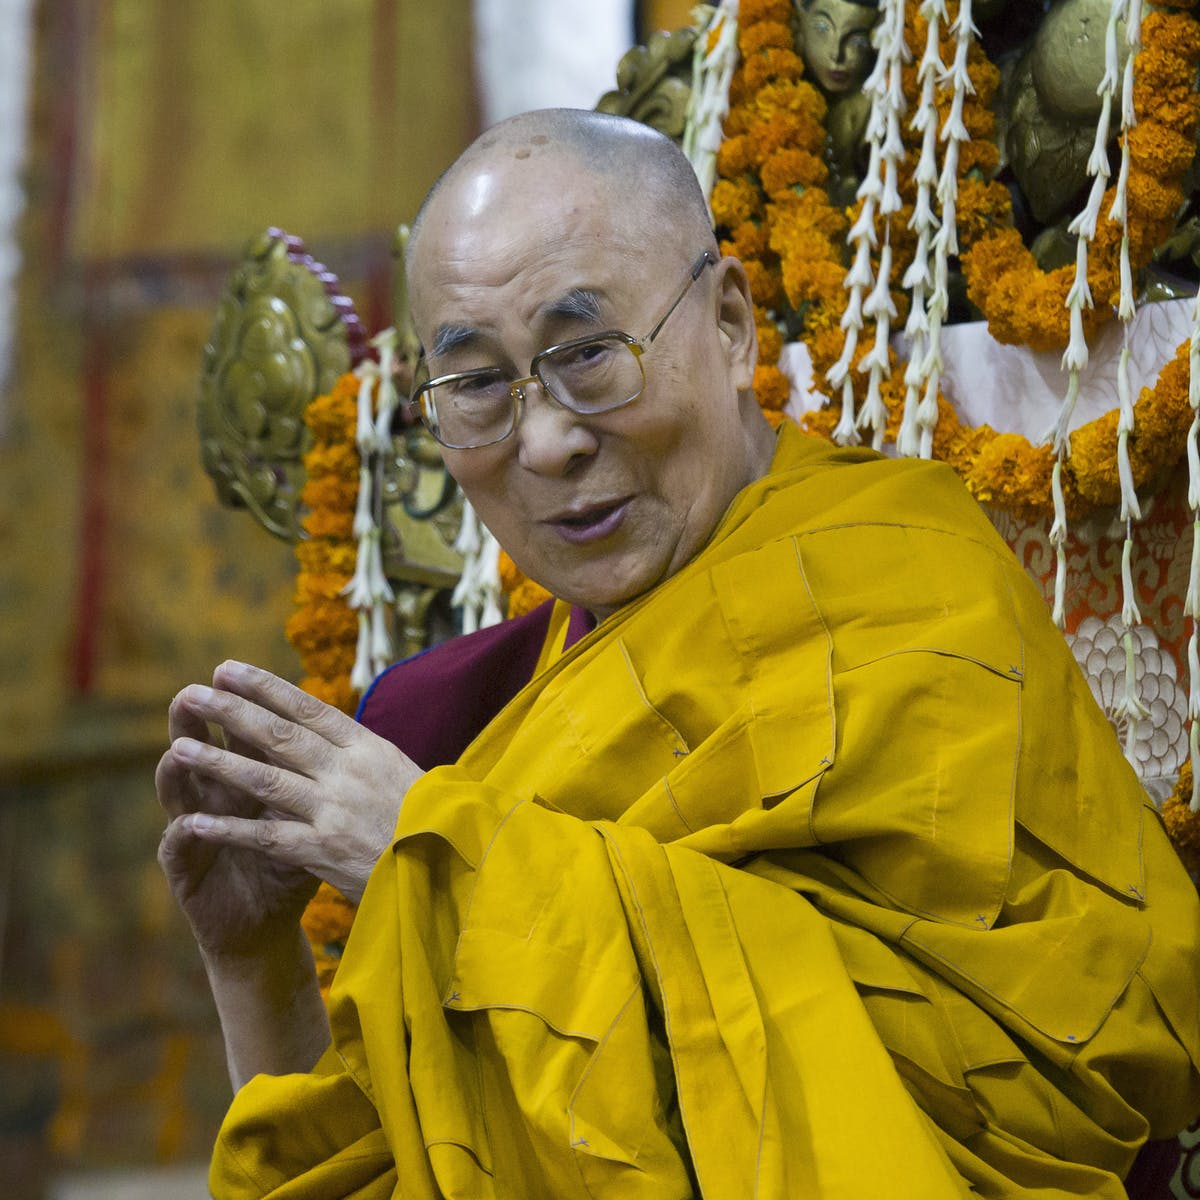 How The Dalai Lama Is Chosen And Why China Wants To Appoint Its Own